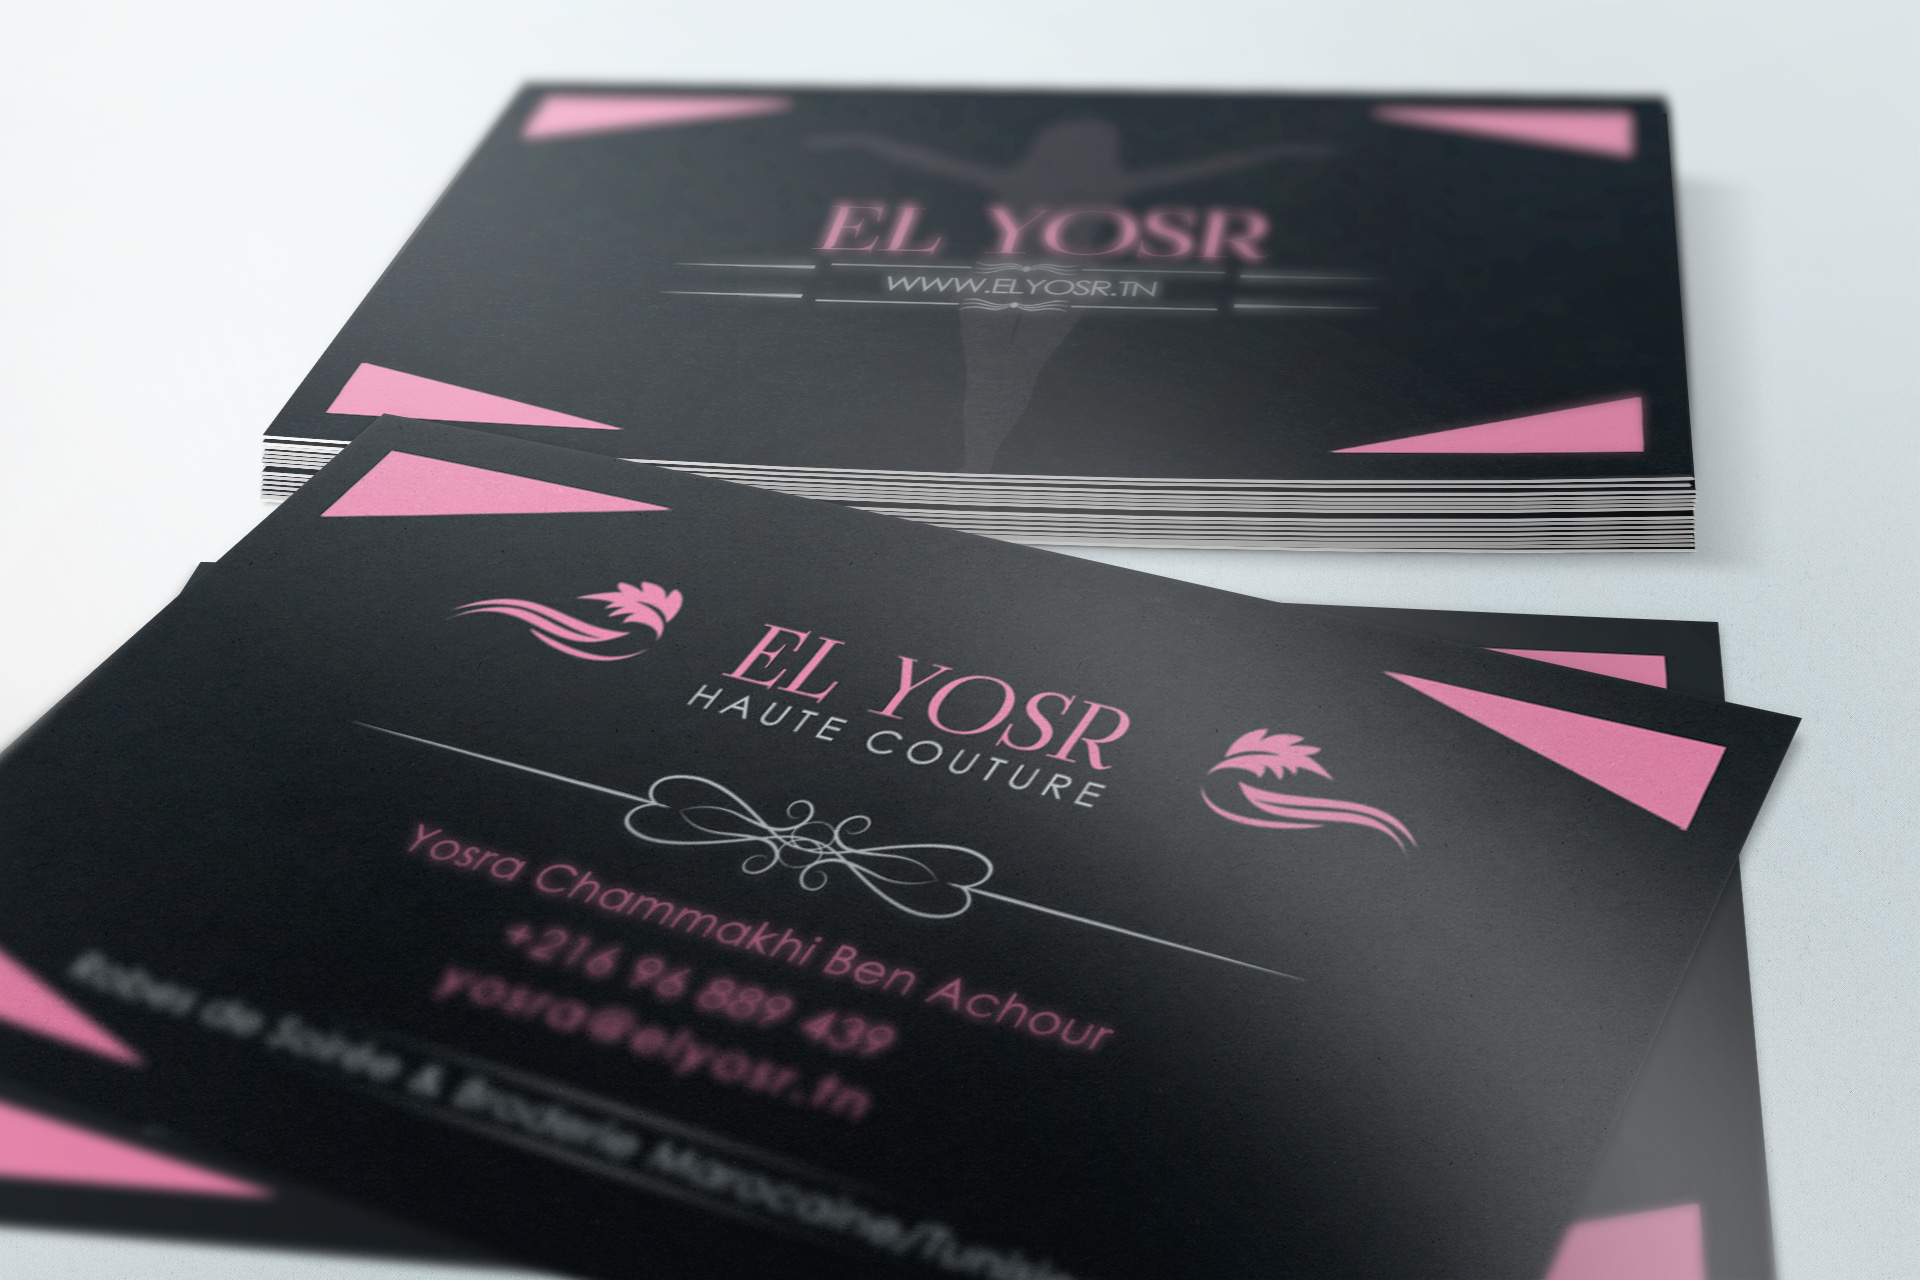 Experts Business El Yosr Haute Couture